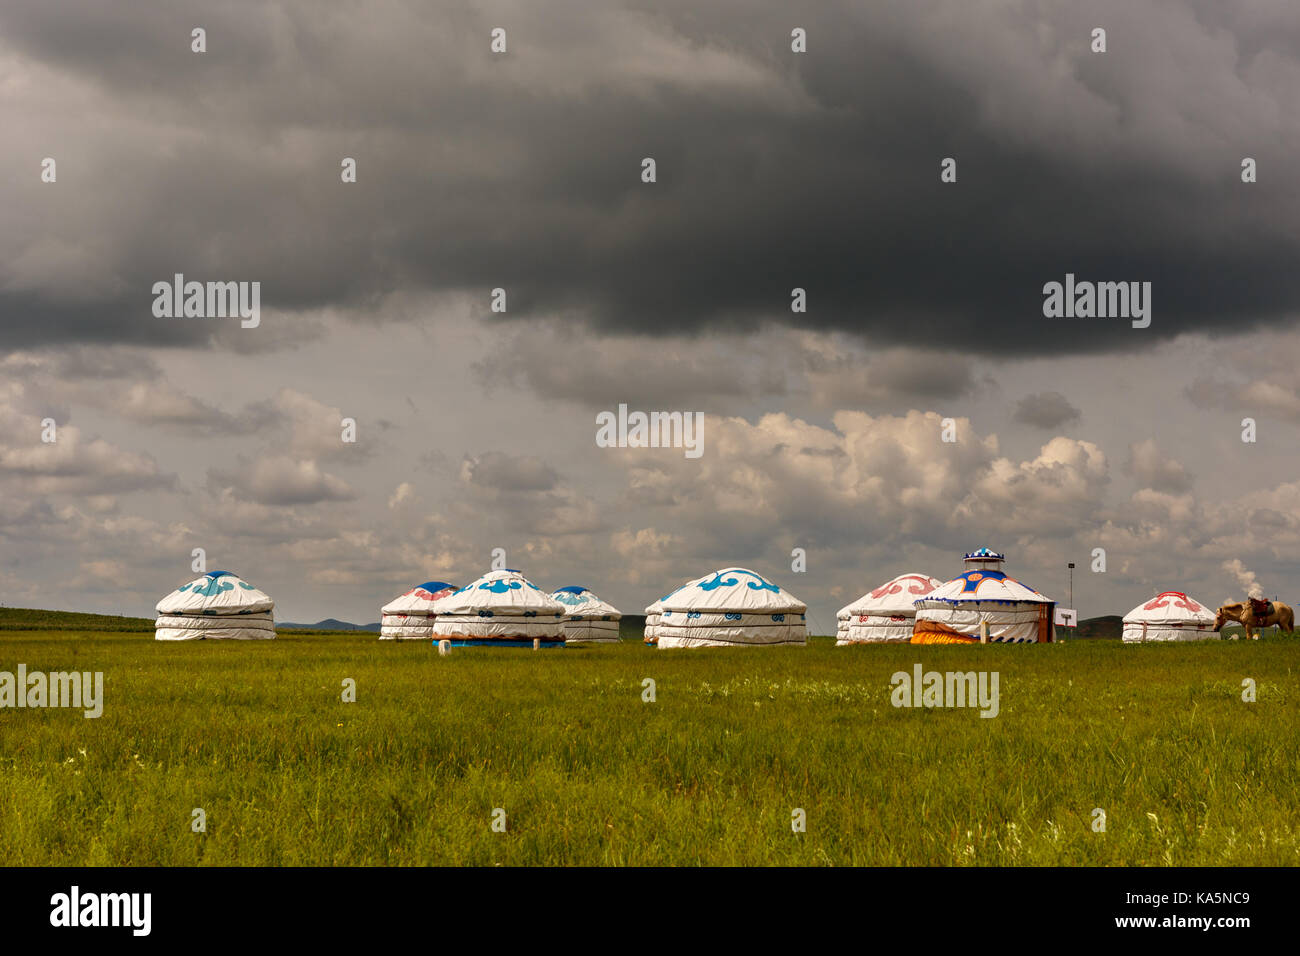 Typical group of Yurt in Mongolian grassland - Stock Image